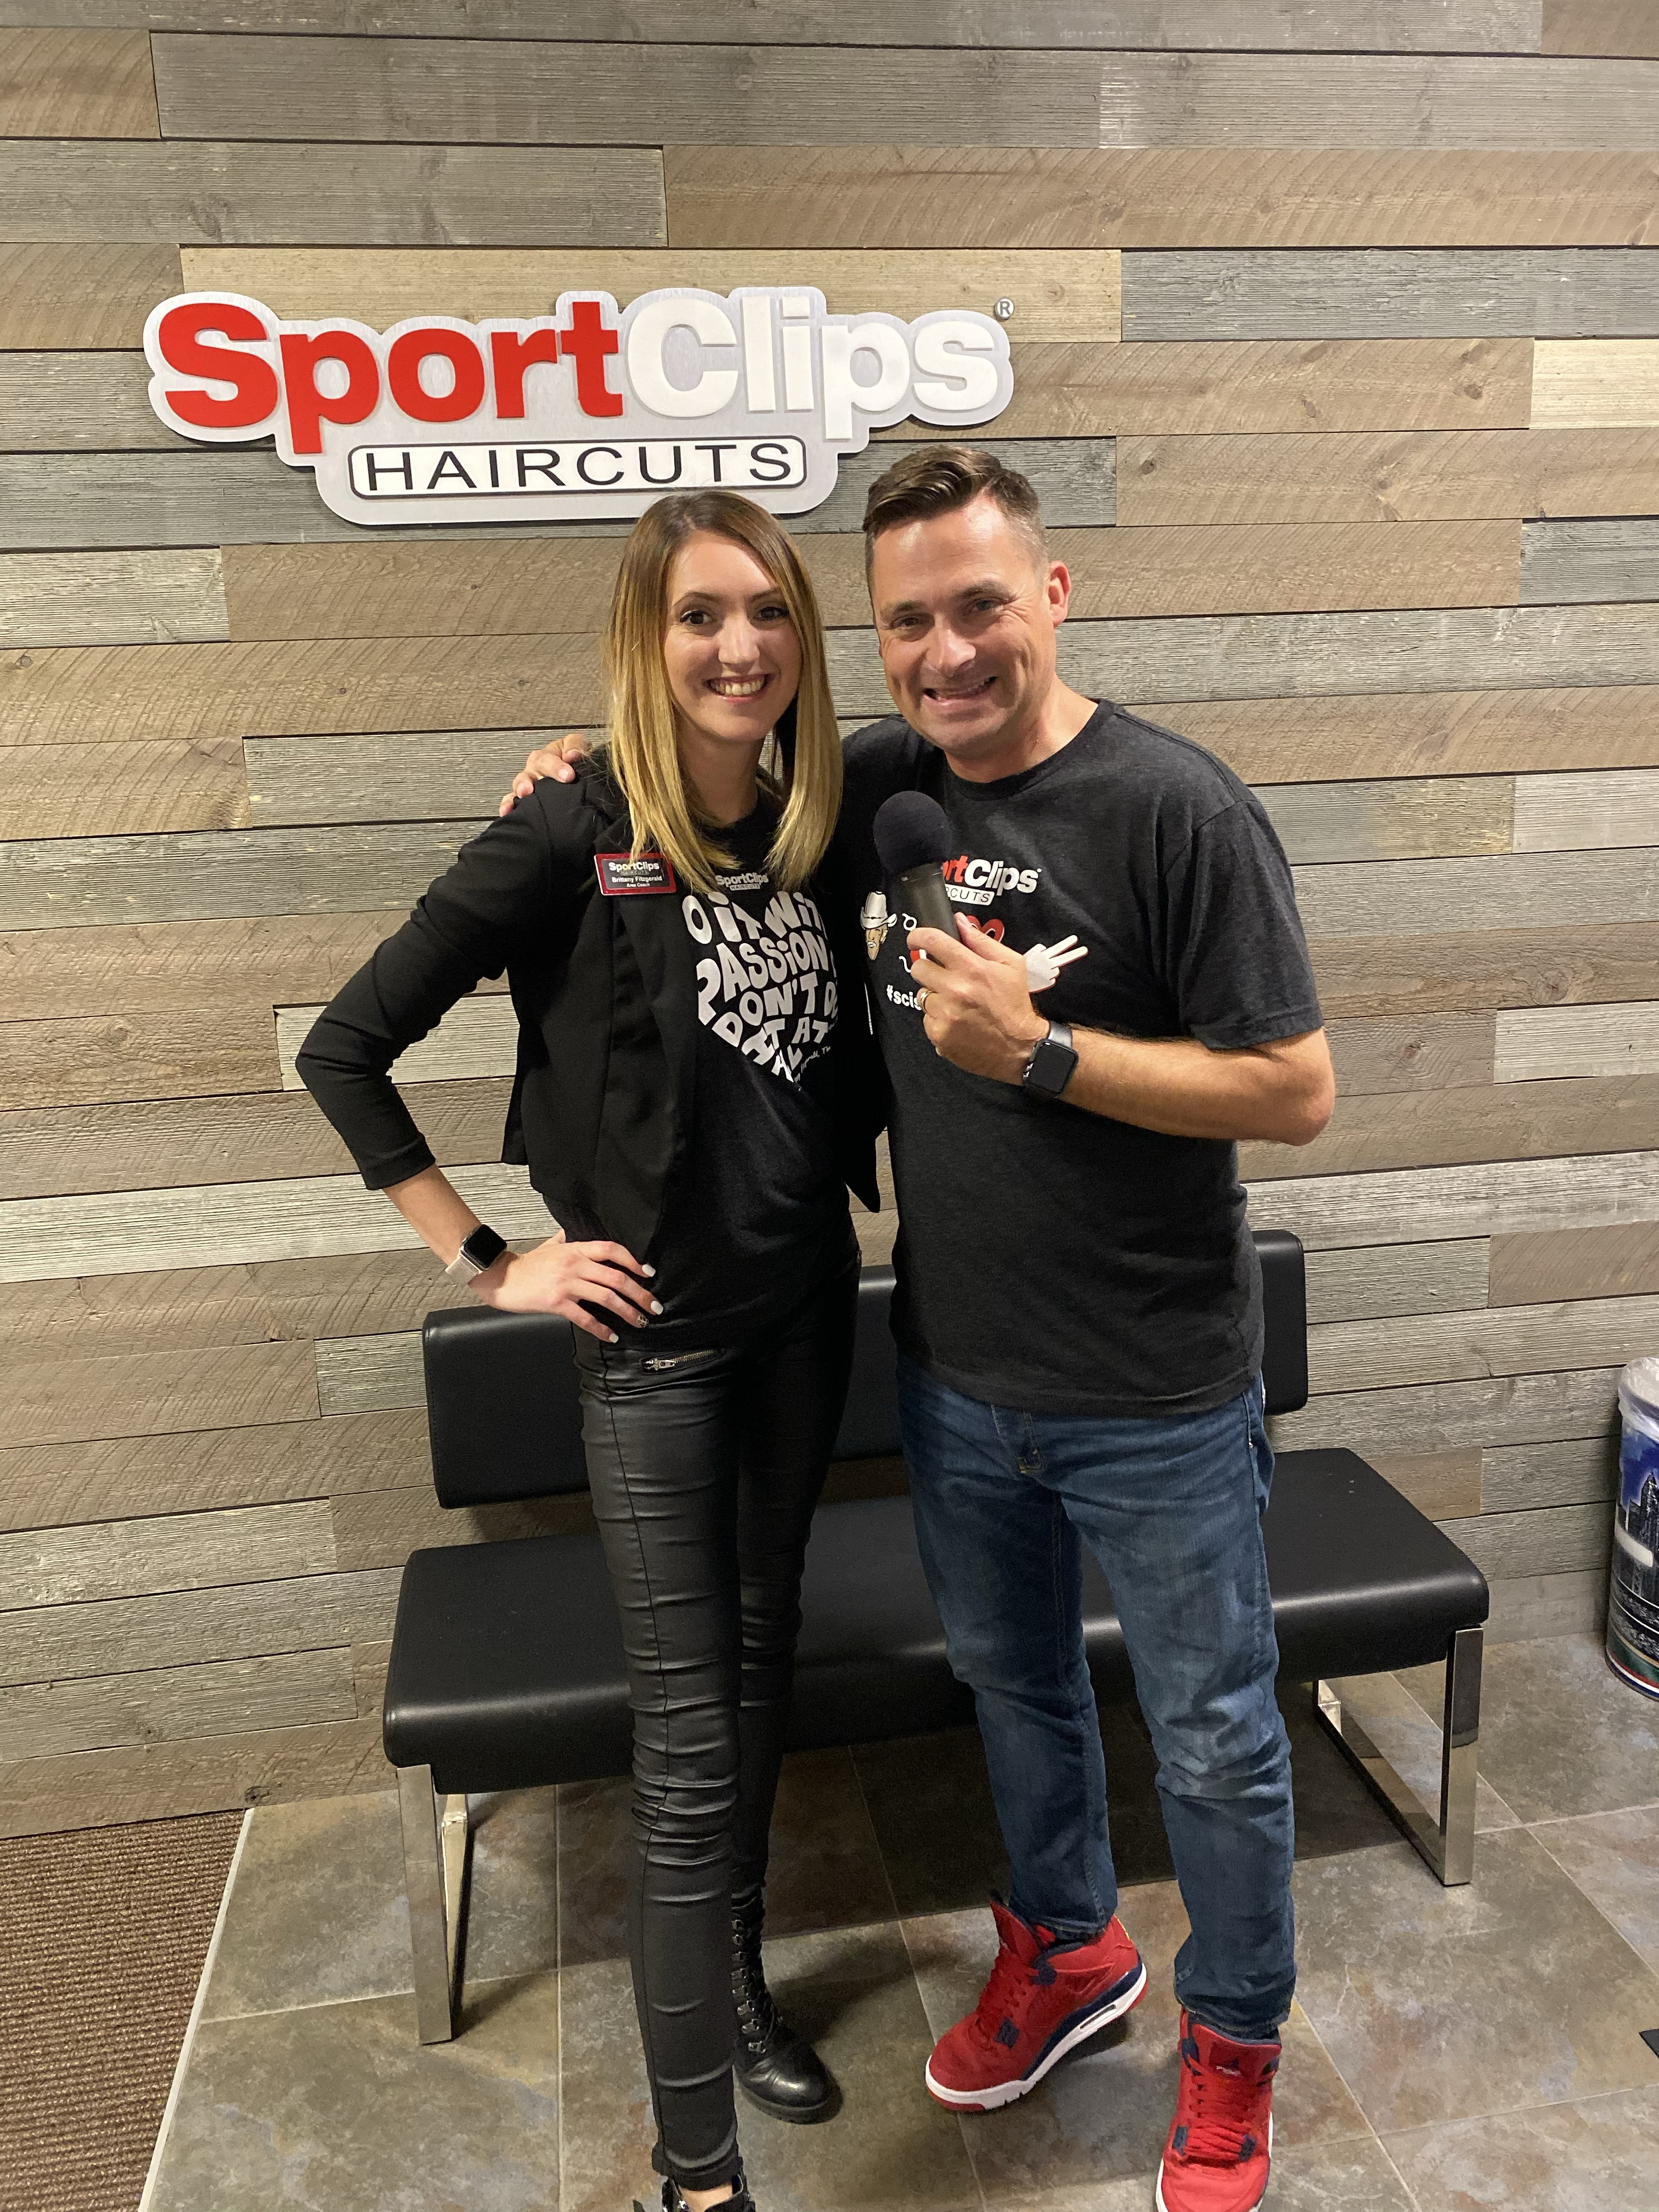 Man and woman standing in front of Sport Clips sign holding a microphone